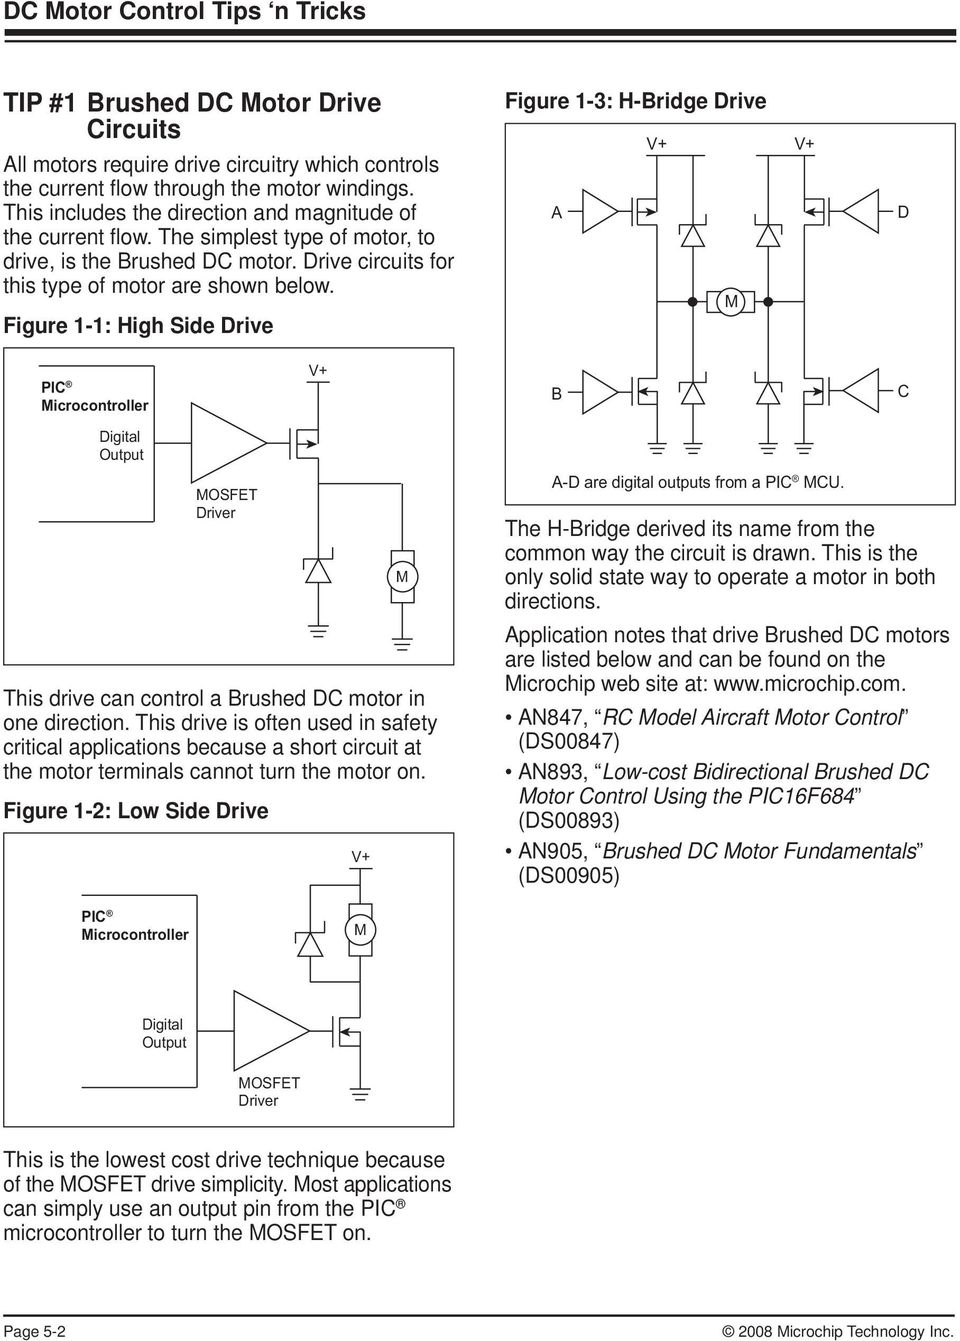 Chapter 5 Dc Motor Control Tips N Tricks Pdf Go Back Gt Gallery For Brushless Electric Diagram Figure 1 High Side Drive 3 H Bridge